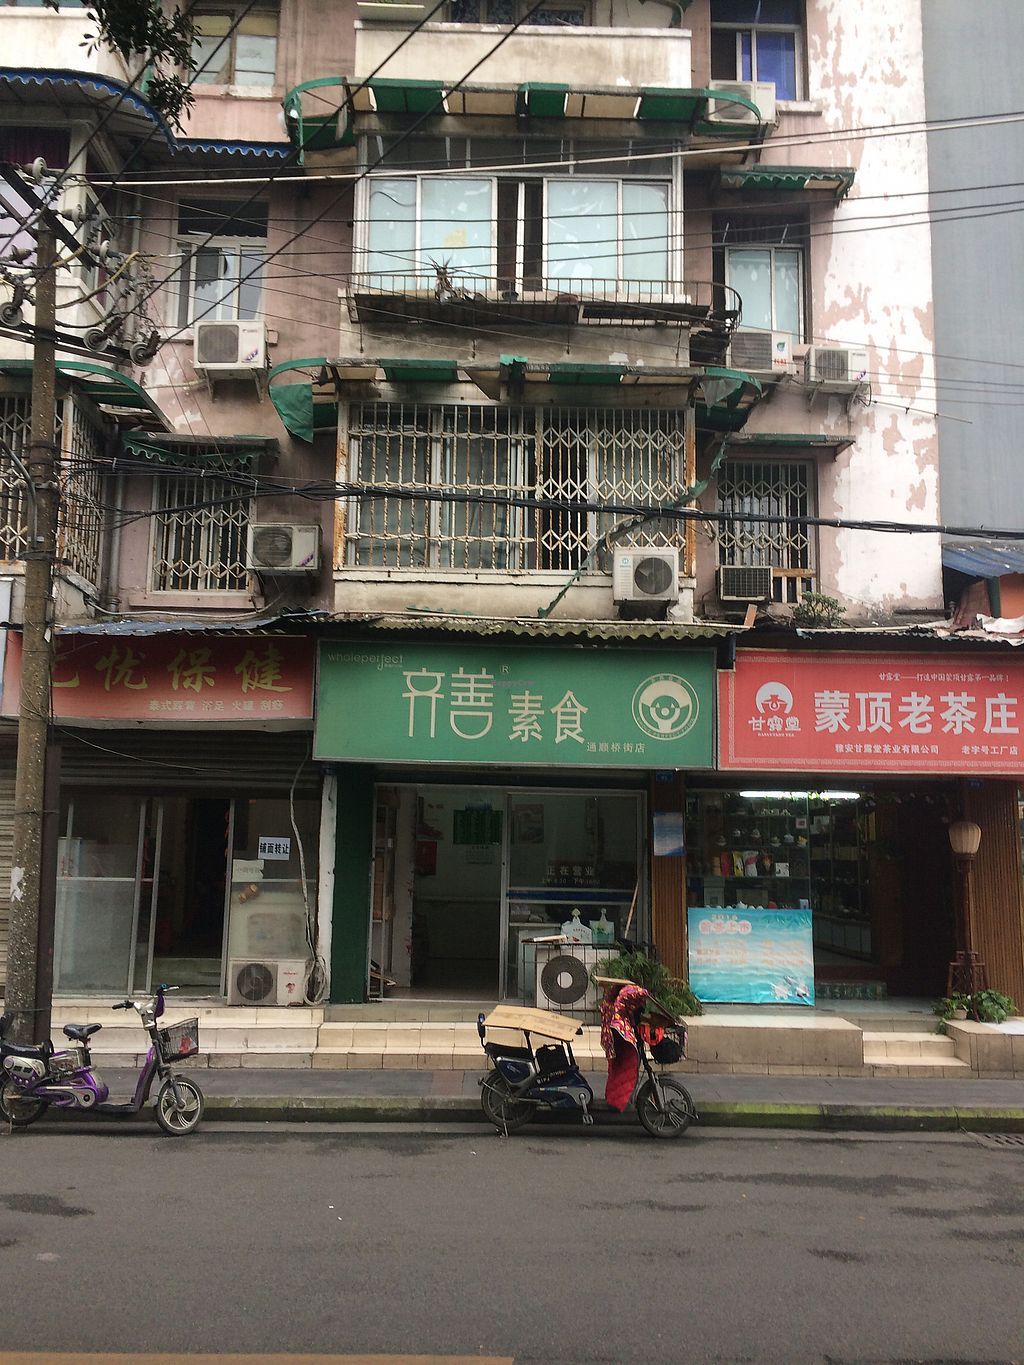 """Photo of Qishan Vegetarian Store  by <a href=""""/members/profile/brtknr"""">brtknr</a> <br/>View of the shop front from outside Aido nunnery  <br/> November 7, 2017  - <a href='/contact/abuse/image/34258/322805'>Report</a>"""